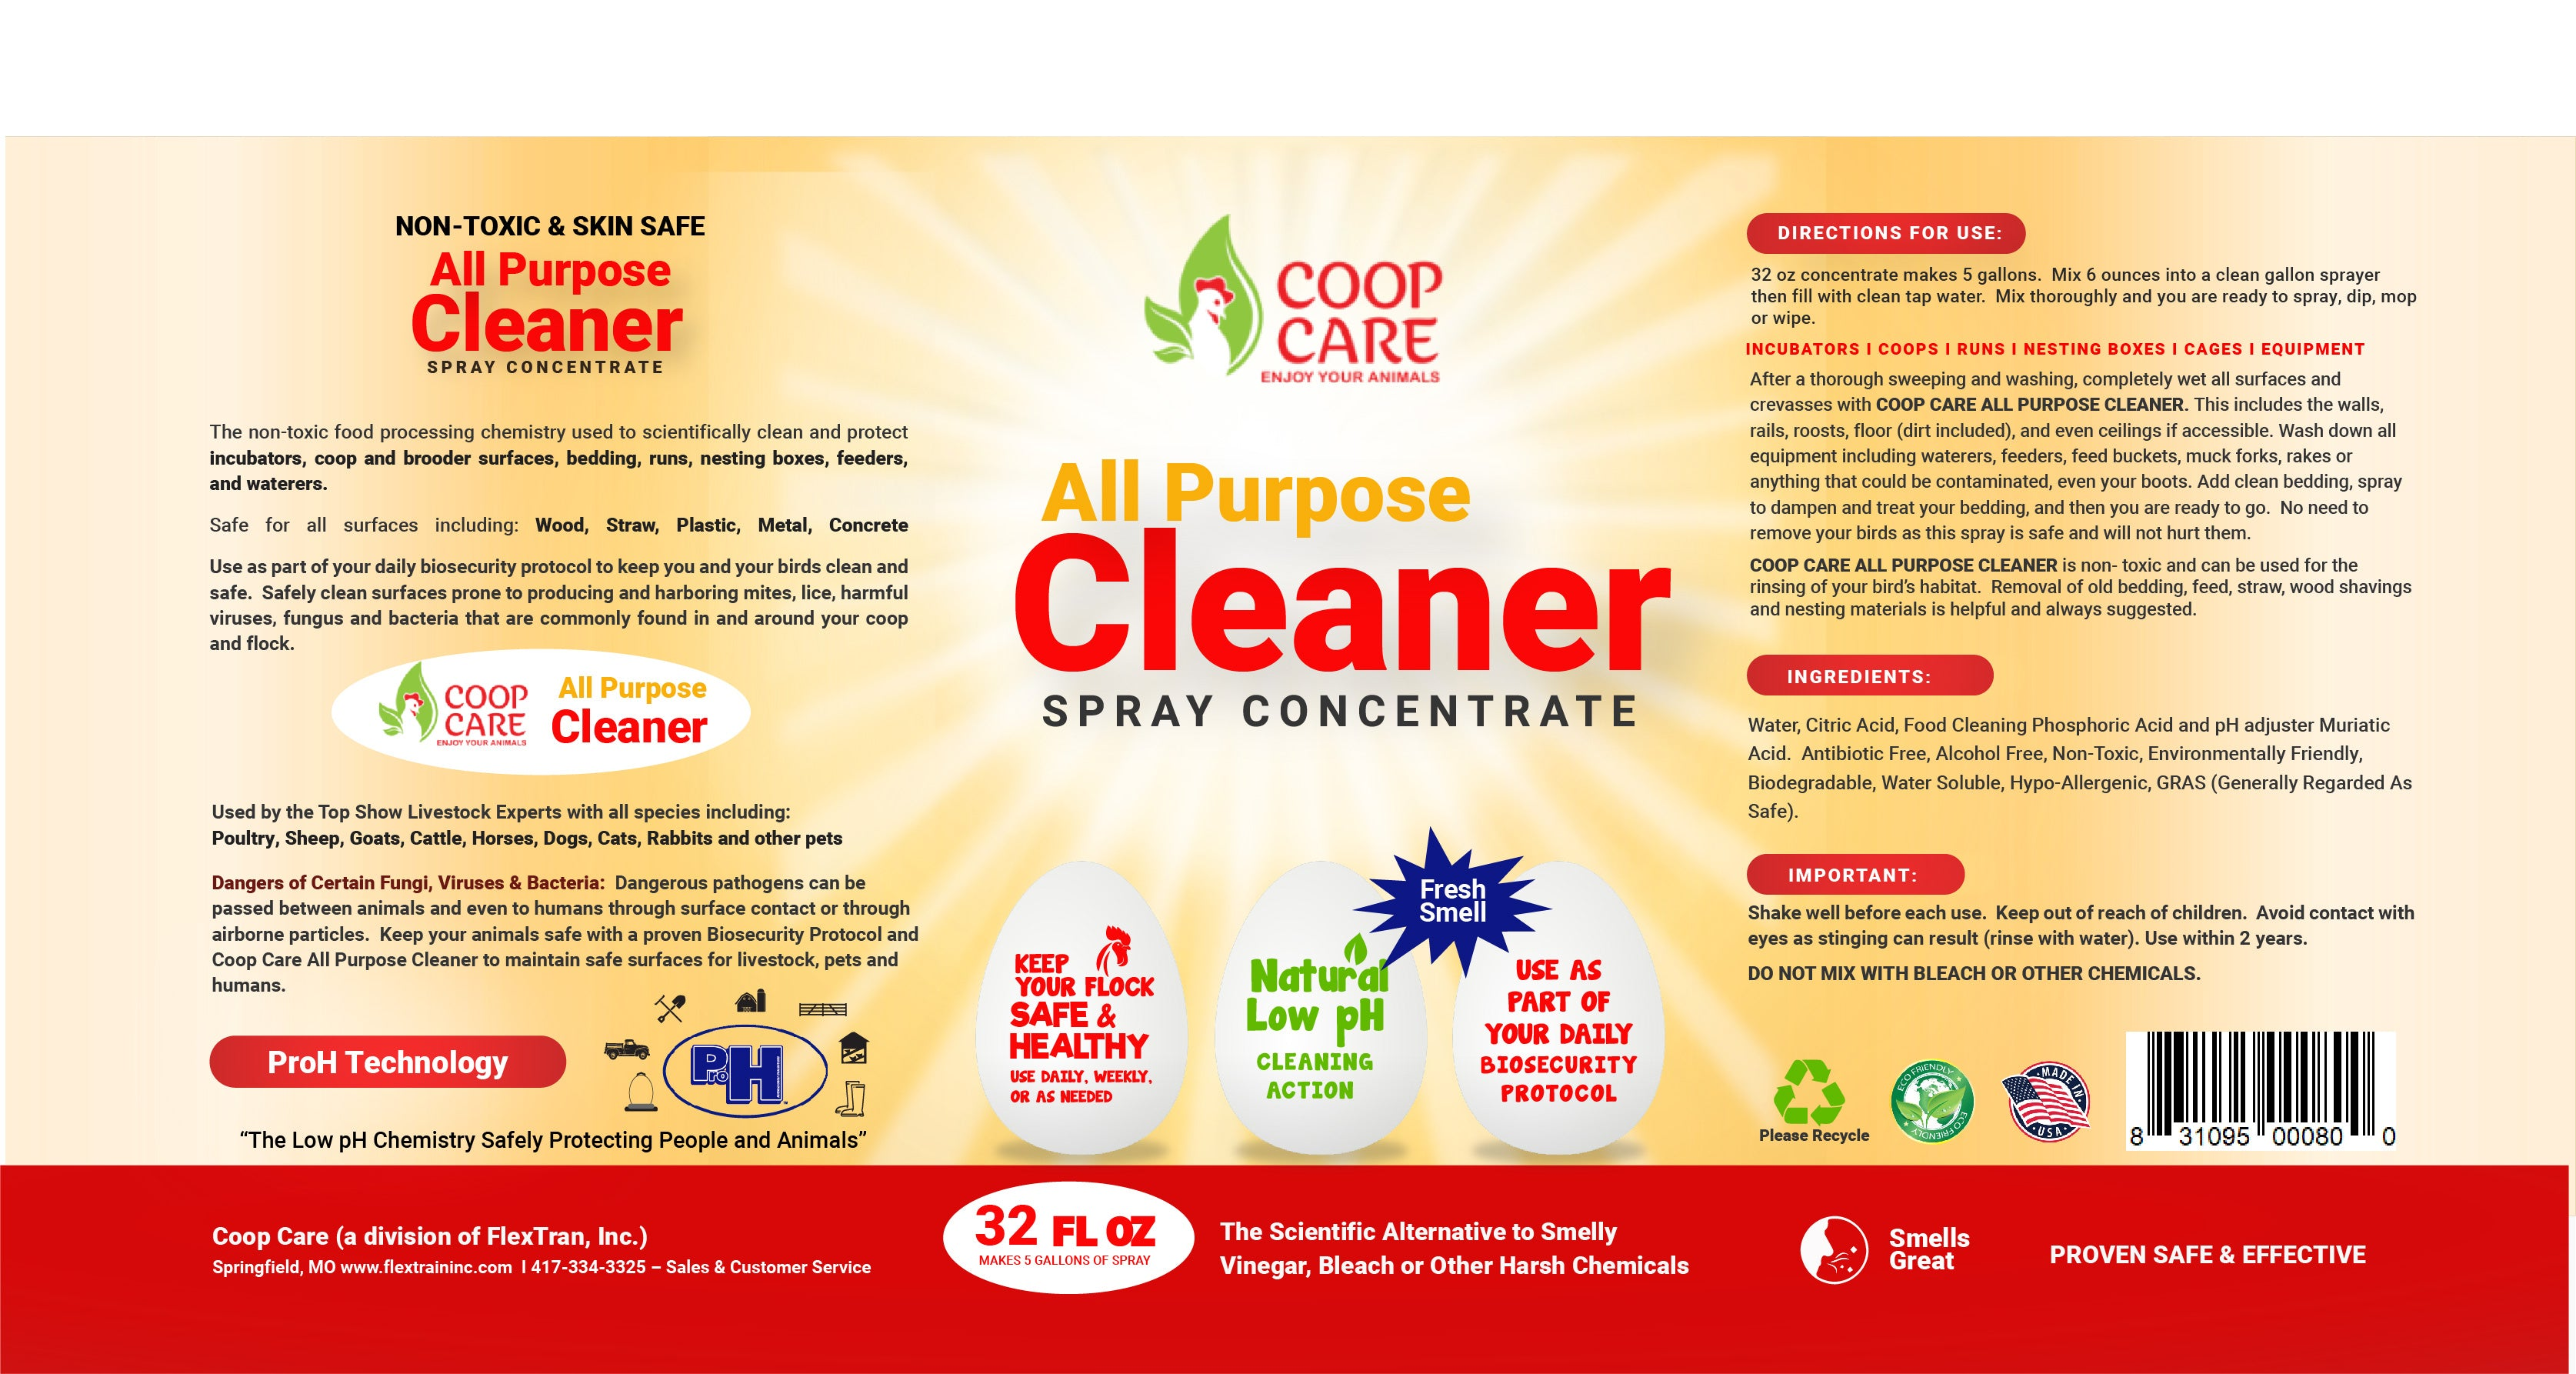 Coop Care All Purpose Cleaner 32oz Spray Concentrate